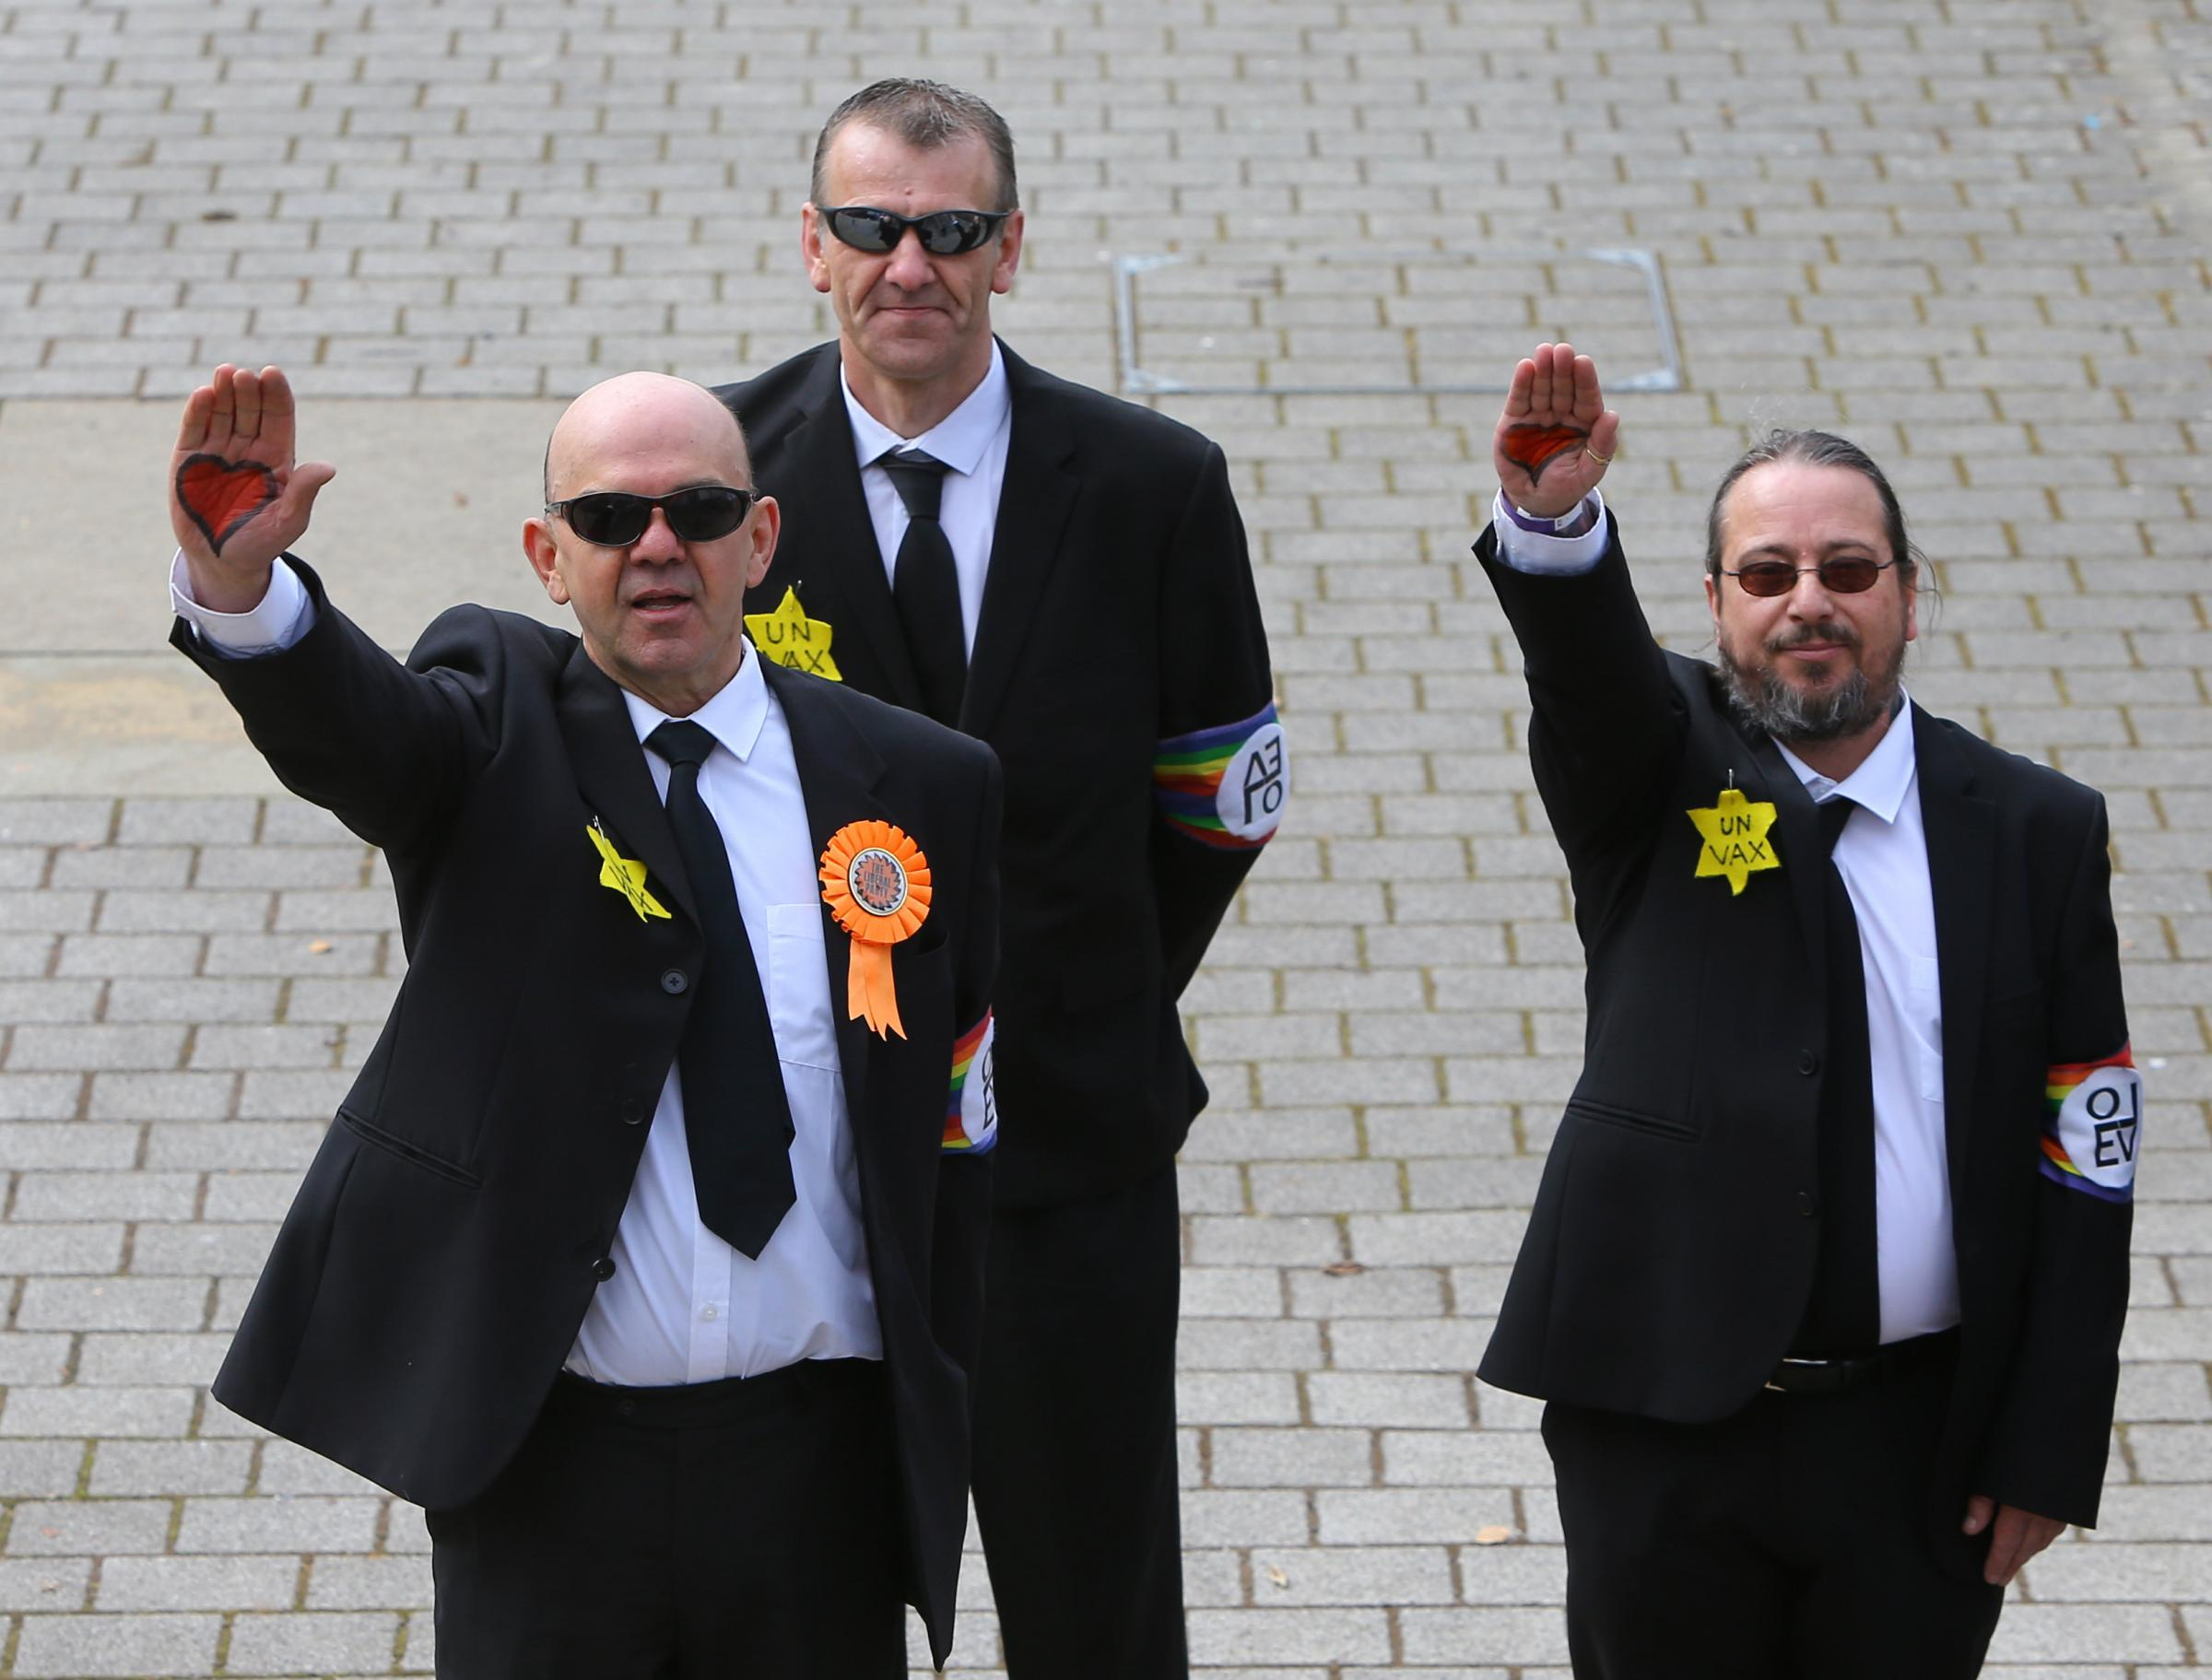 Anti-vaccination Liberal Party candidate performs 'Nazi salute' outside Glasgow election count